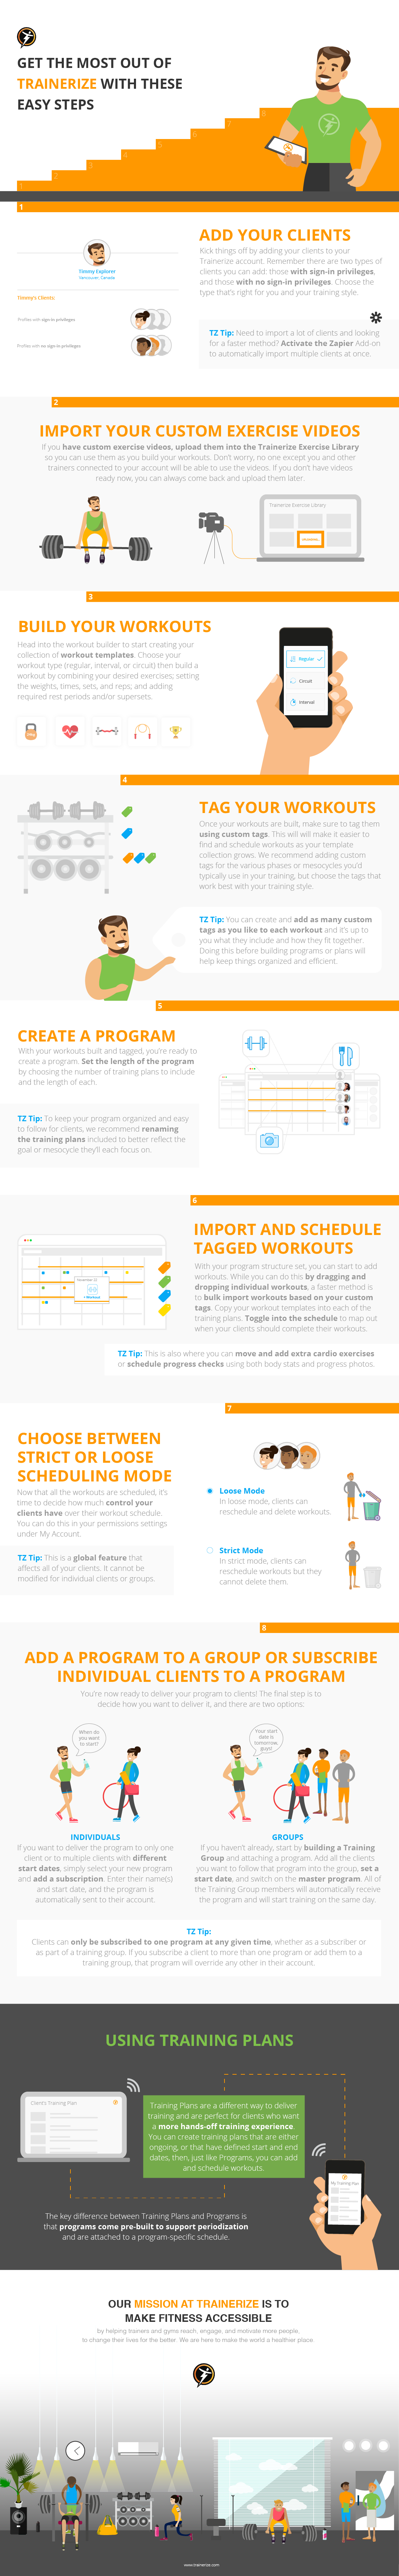 Learn how to use Trainerize with this step-by-step infographic